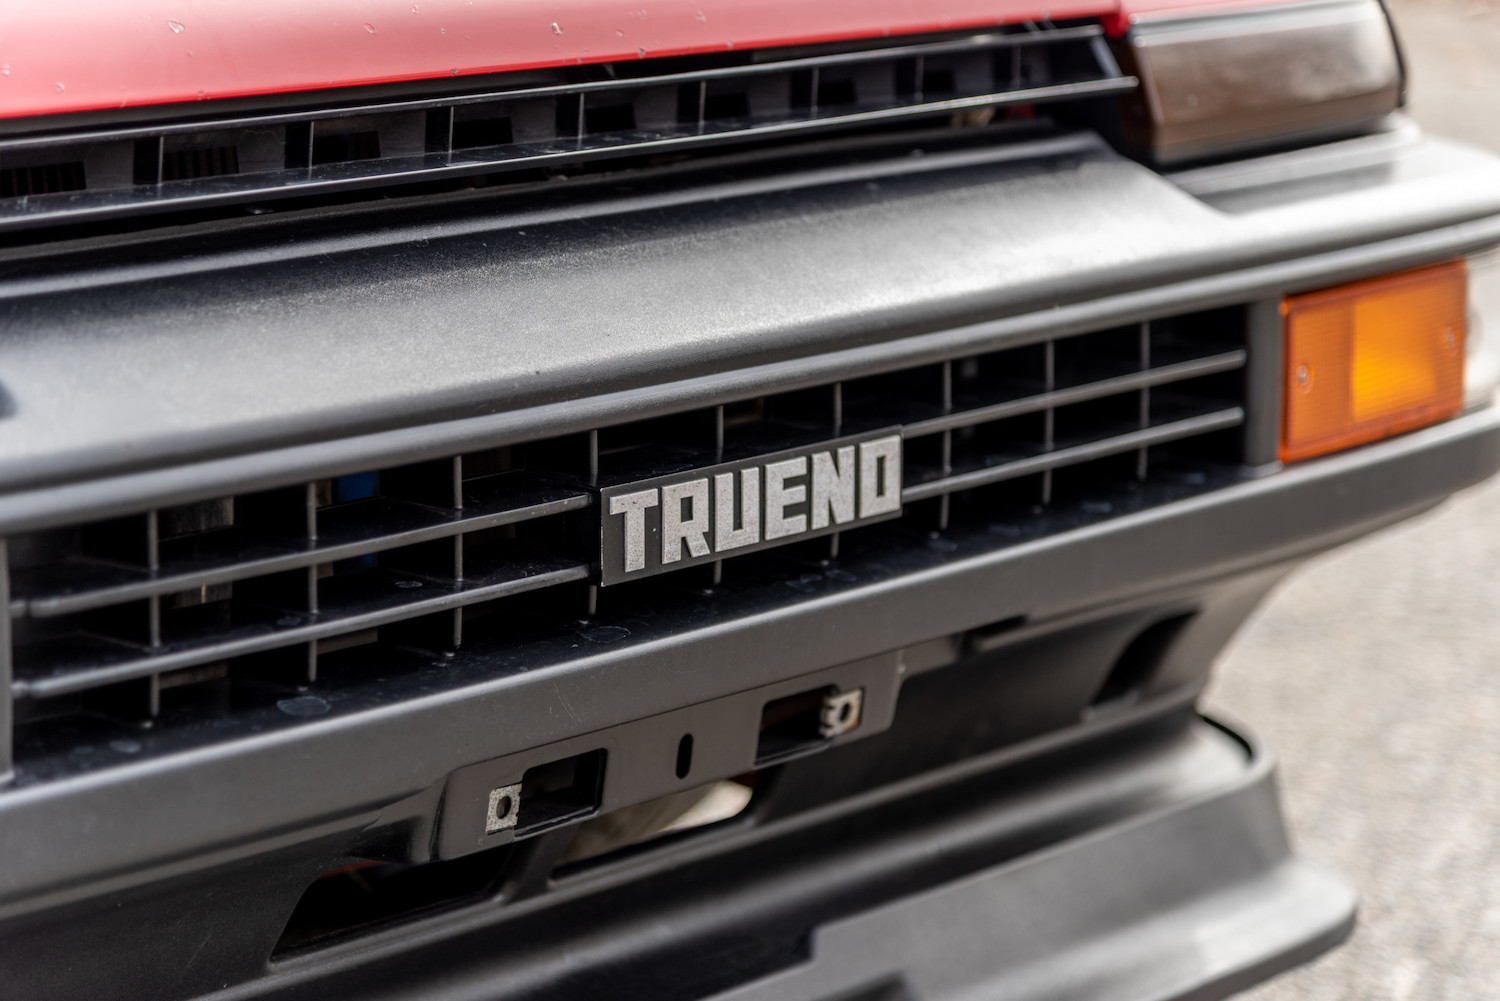 trueno emblem in front grille